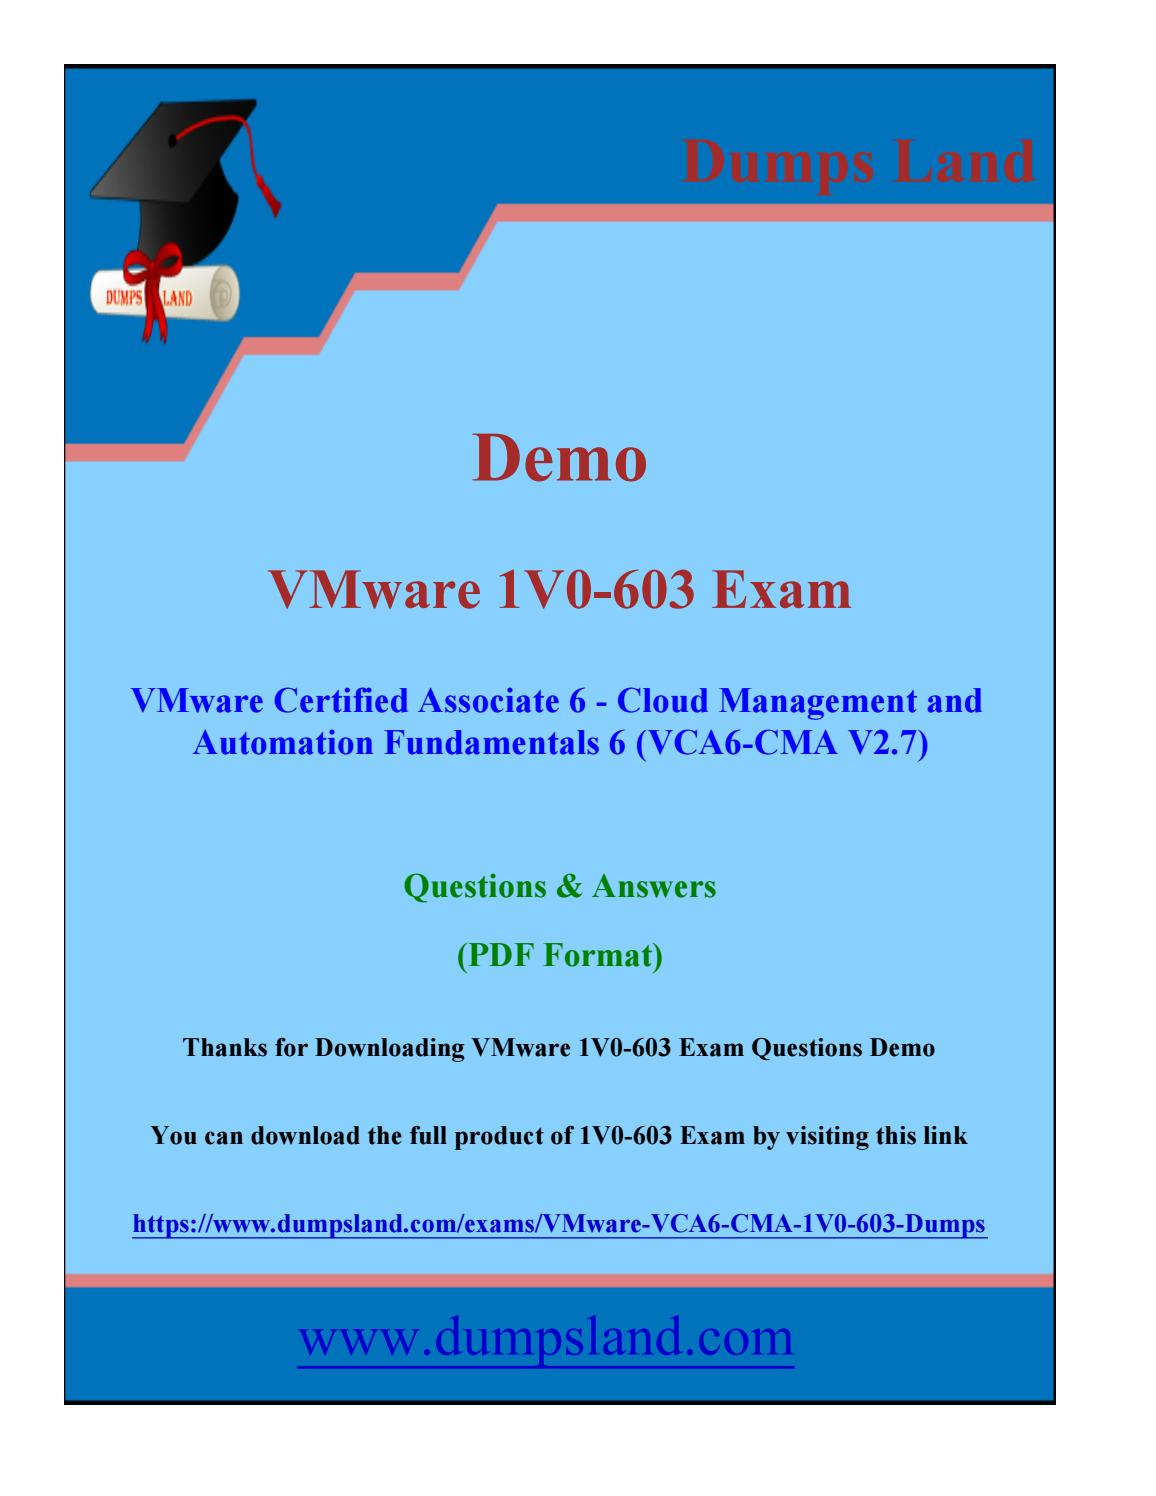 Vmware VCA6-CMA 1V0-603 Associate Real PDF Dumps by DumpsLand - issuu